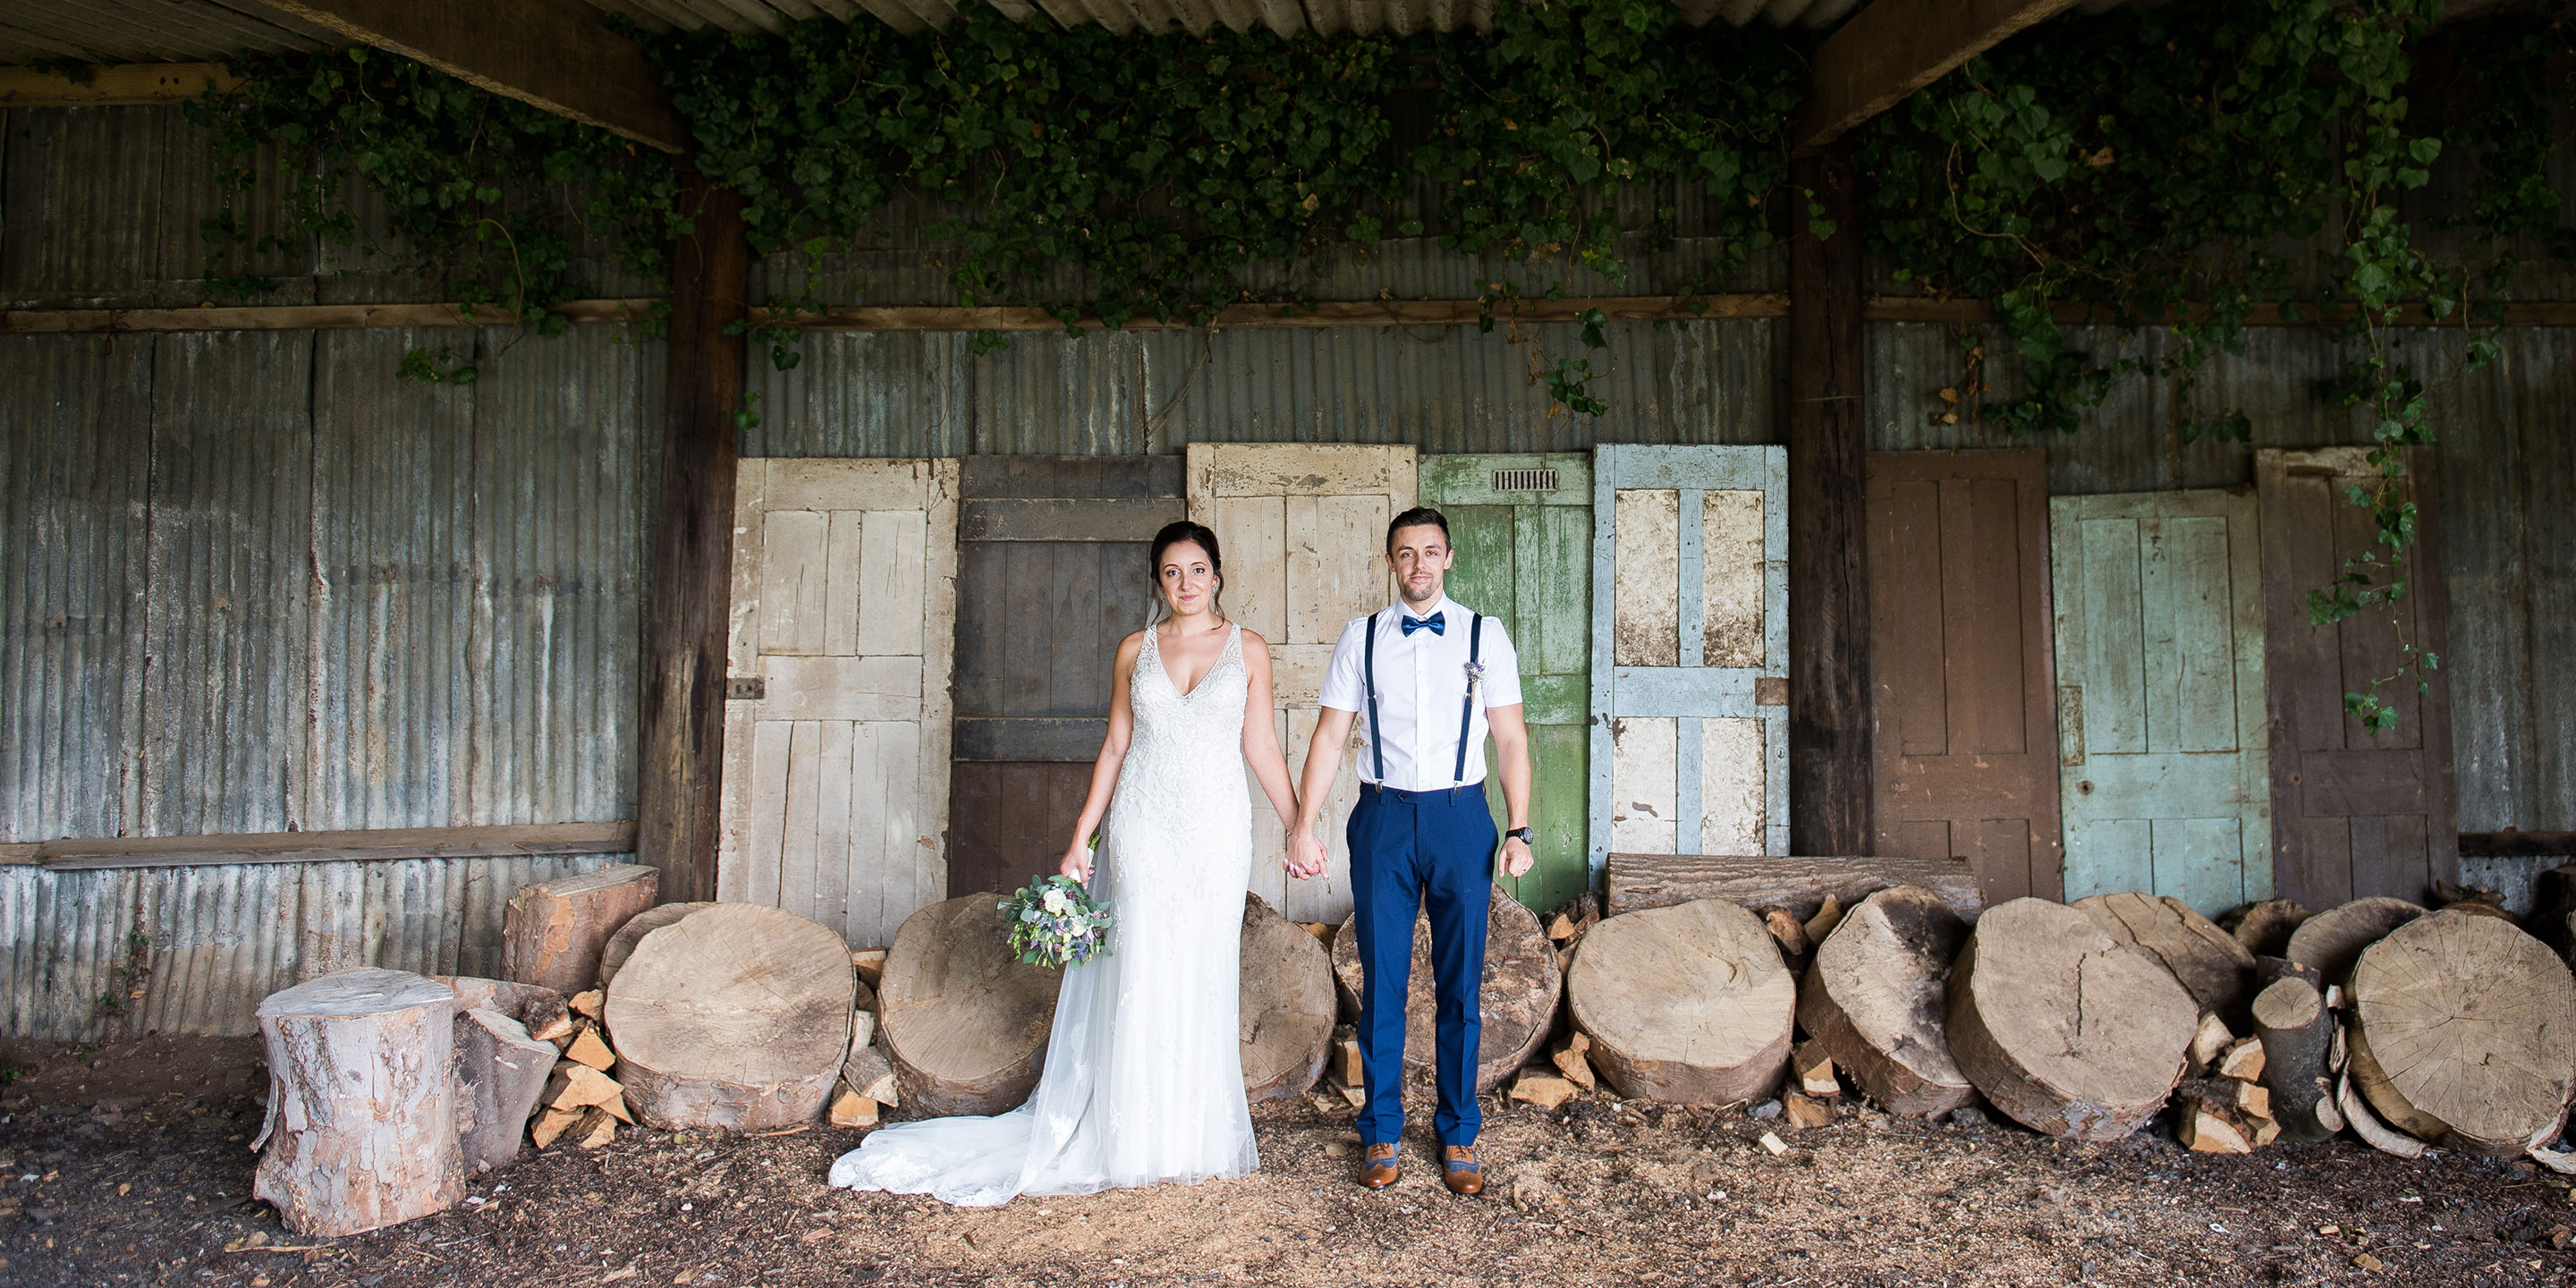 Gorgeousness at the Barns in Hunsbury HIll, Northamptonshire wedding Photographer